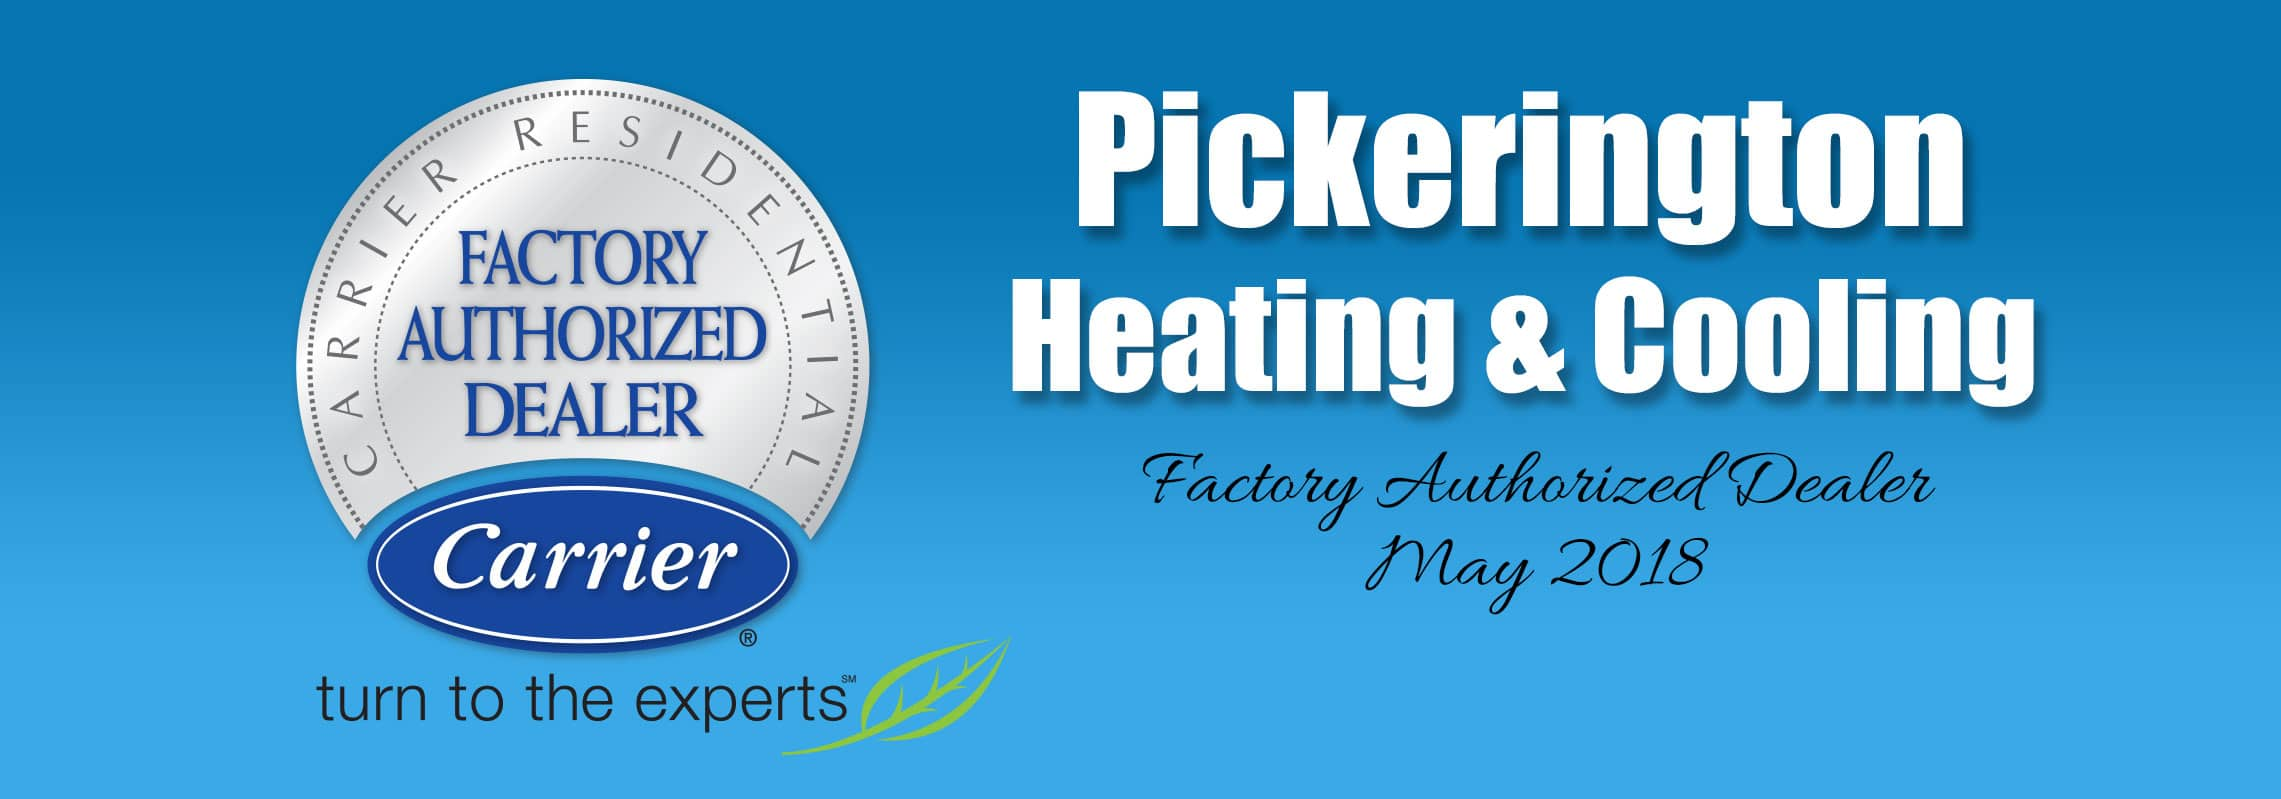 Carrier Factory Authorized Dealer | Pickerington Heating & Cooling